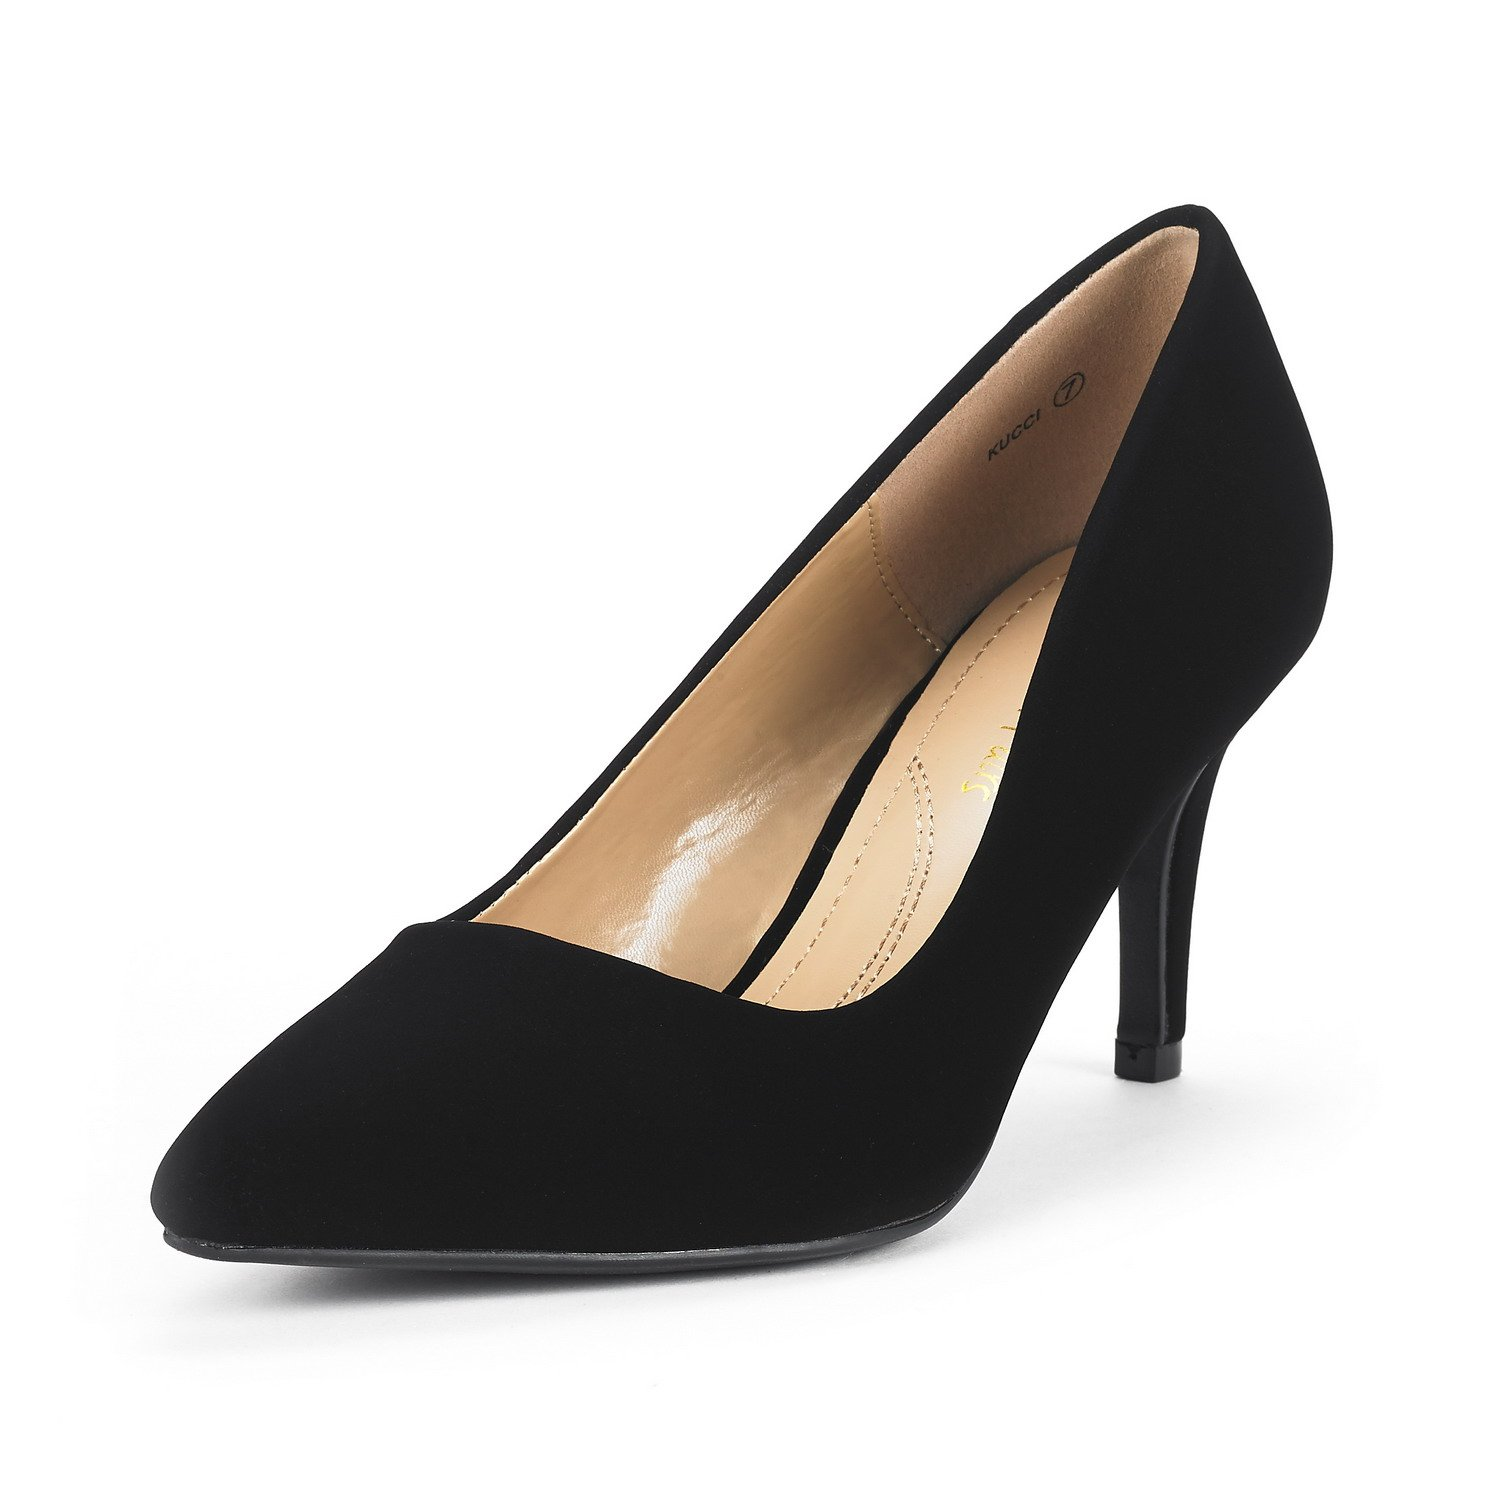 DREAM PAIRS Women's KUCCI Black Nubuck Classic Fashion Pointed Toe High Heel Dress Pumps Shoes Size 6 M US